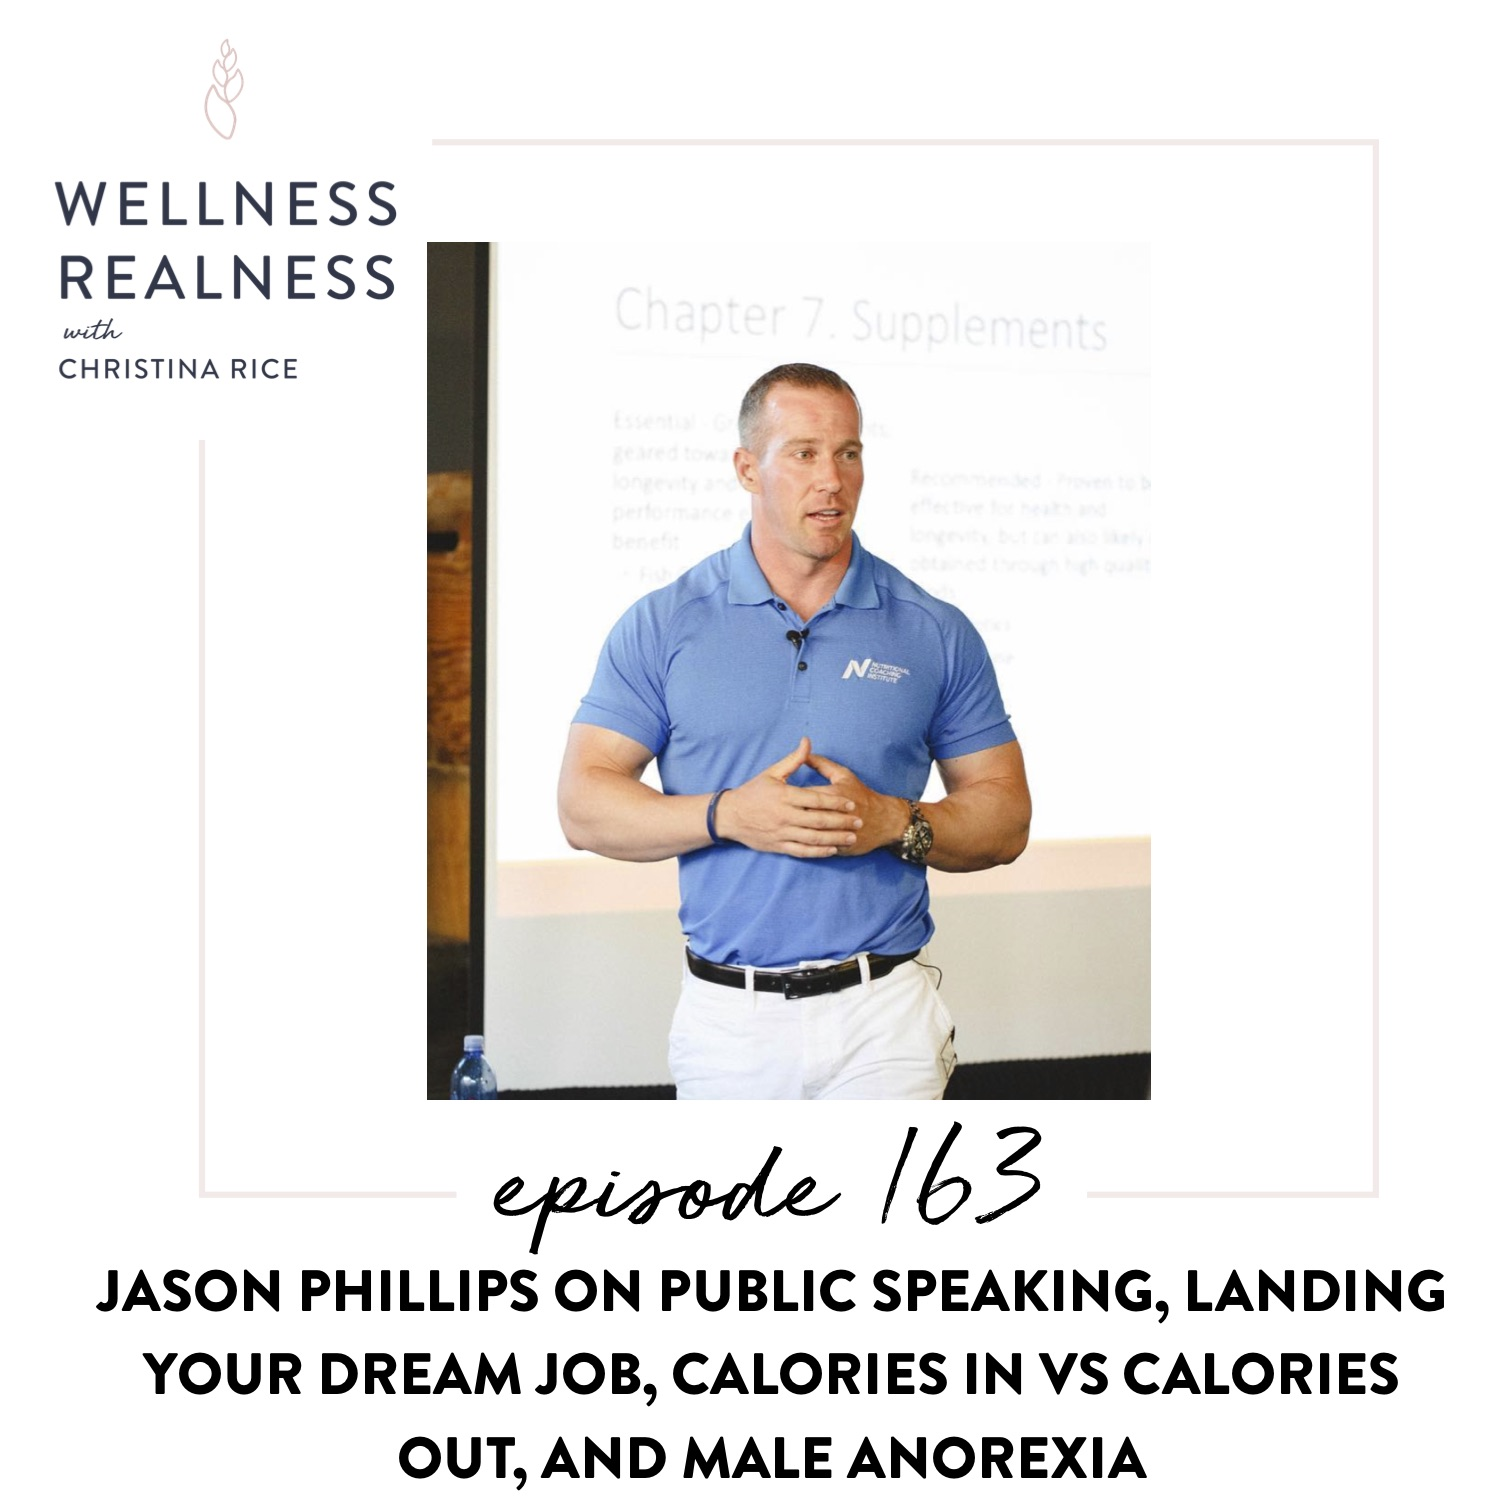 163: Jason Phillips on Public Speaking, Landing Your Dream Job, Calories In vs. Calories Out, and Male Anorexia